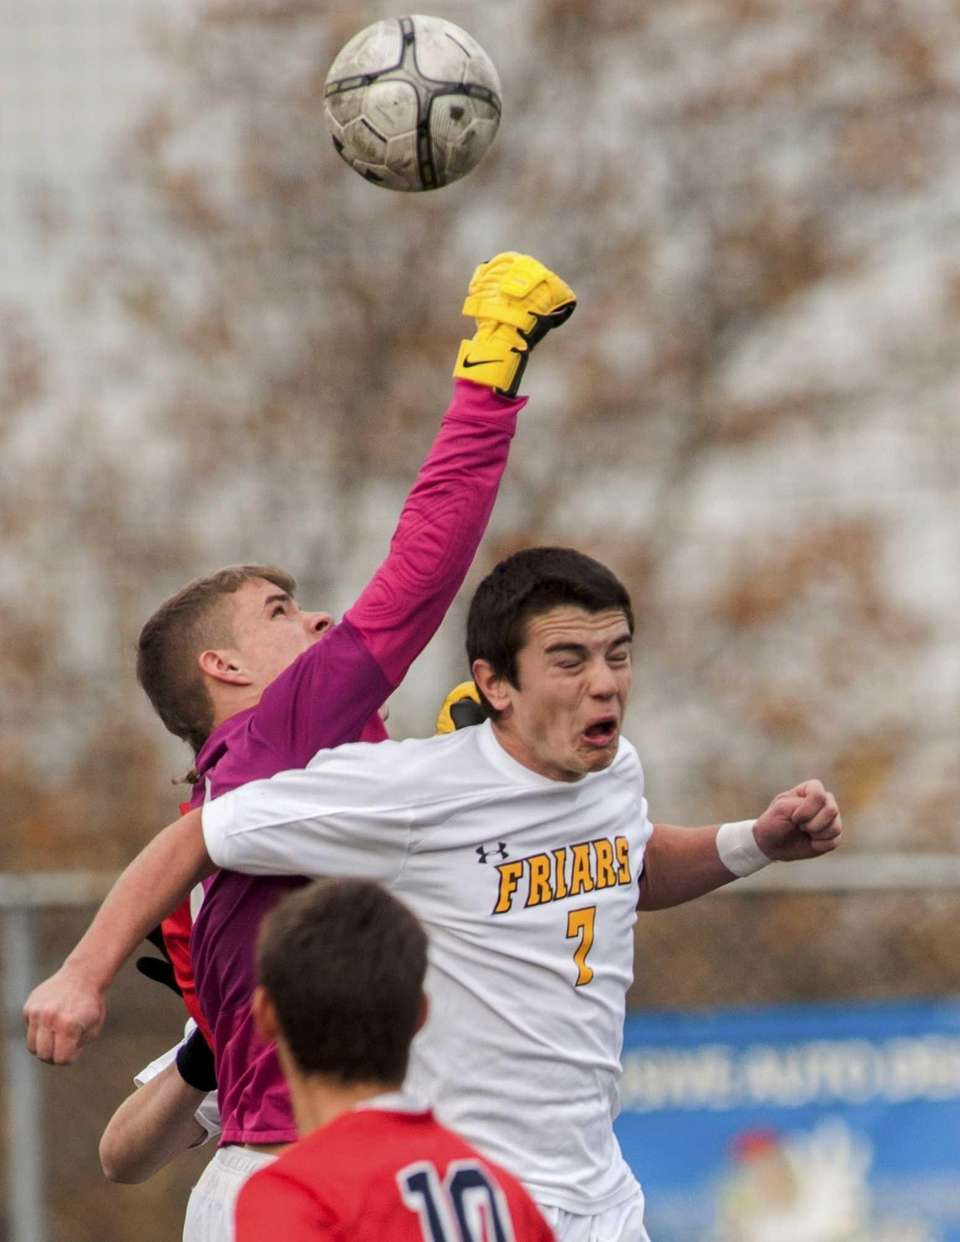 St. Francis Prep goalKeeper Chris Kilcarr punches the